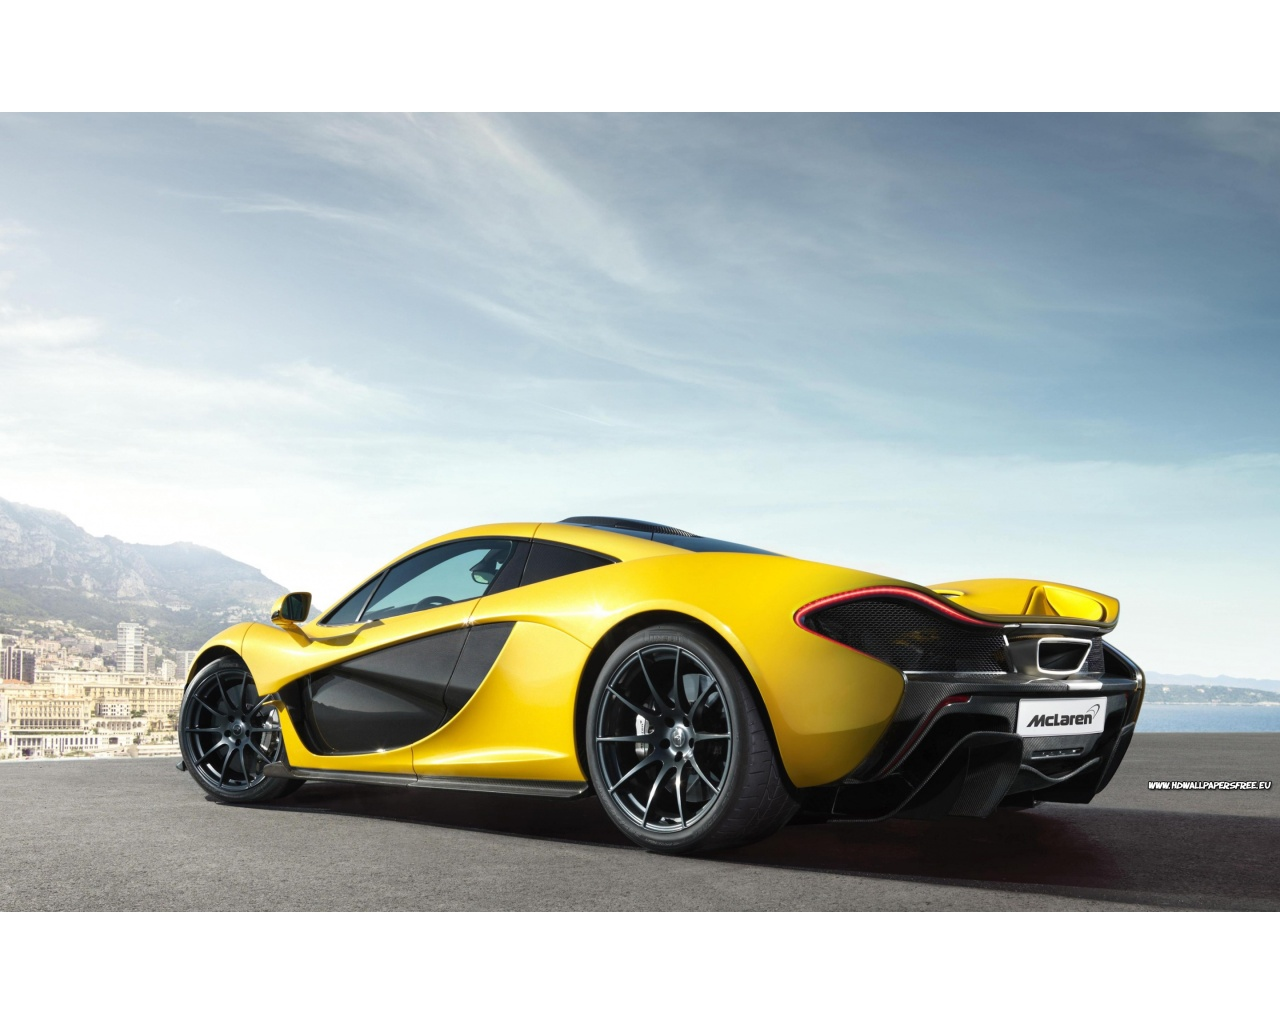 McLaren P1 Supercar 2014 Wallpaper in 1280x1024 Resolution 1280x1024